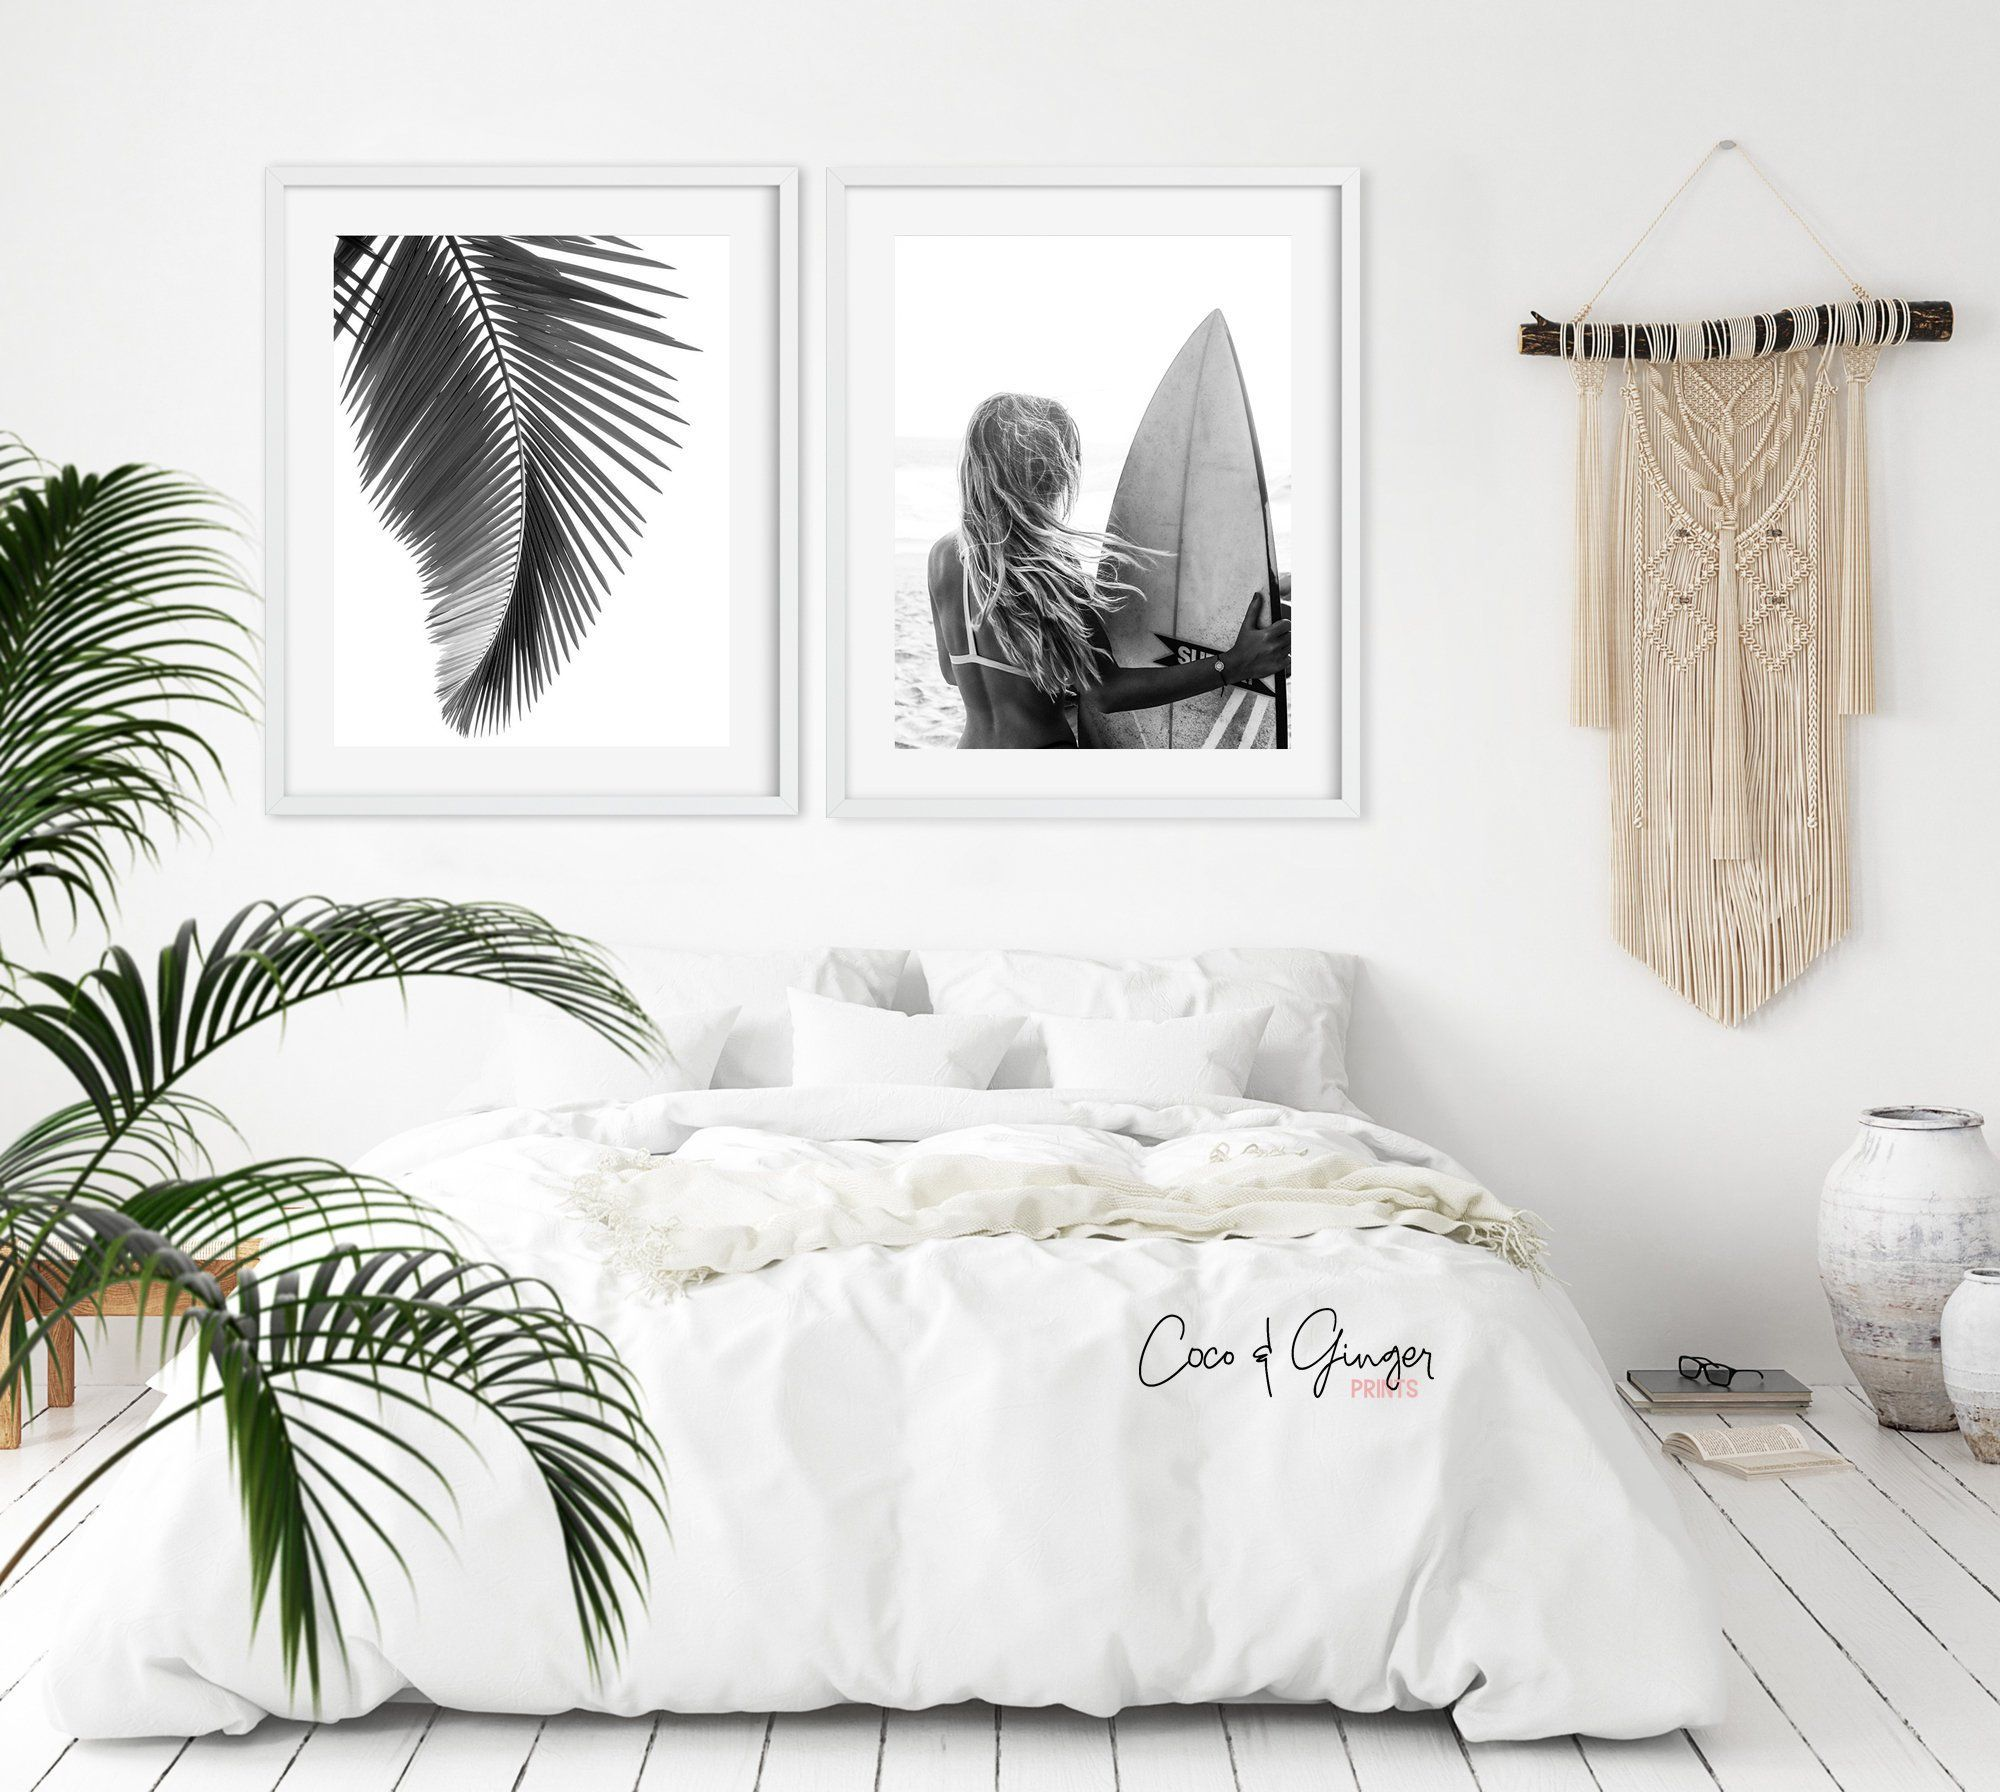 Photo of Surf and Ocean Print Set, Surfer Poster, Surfing Print, Boho Digital Print, Black And White Surf, Beach Coastal Decor, Tropical Wall Art